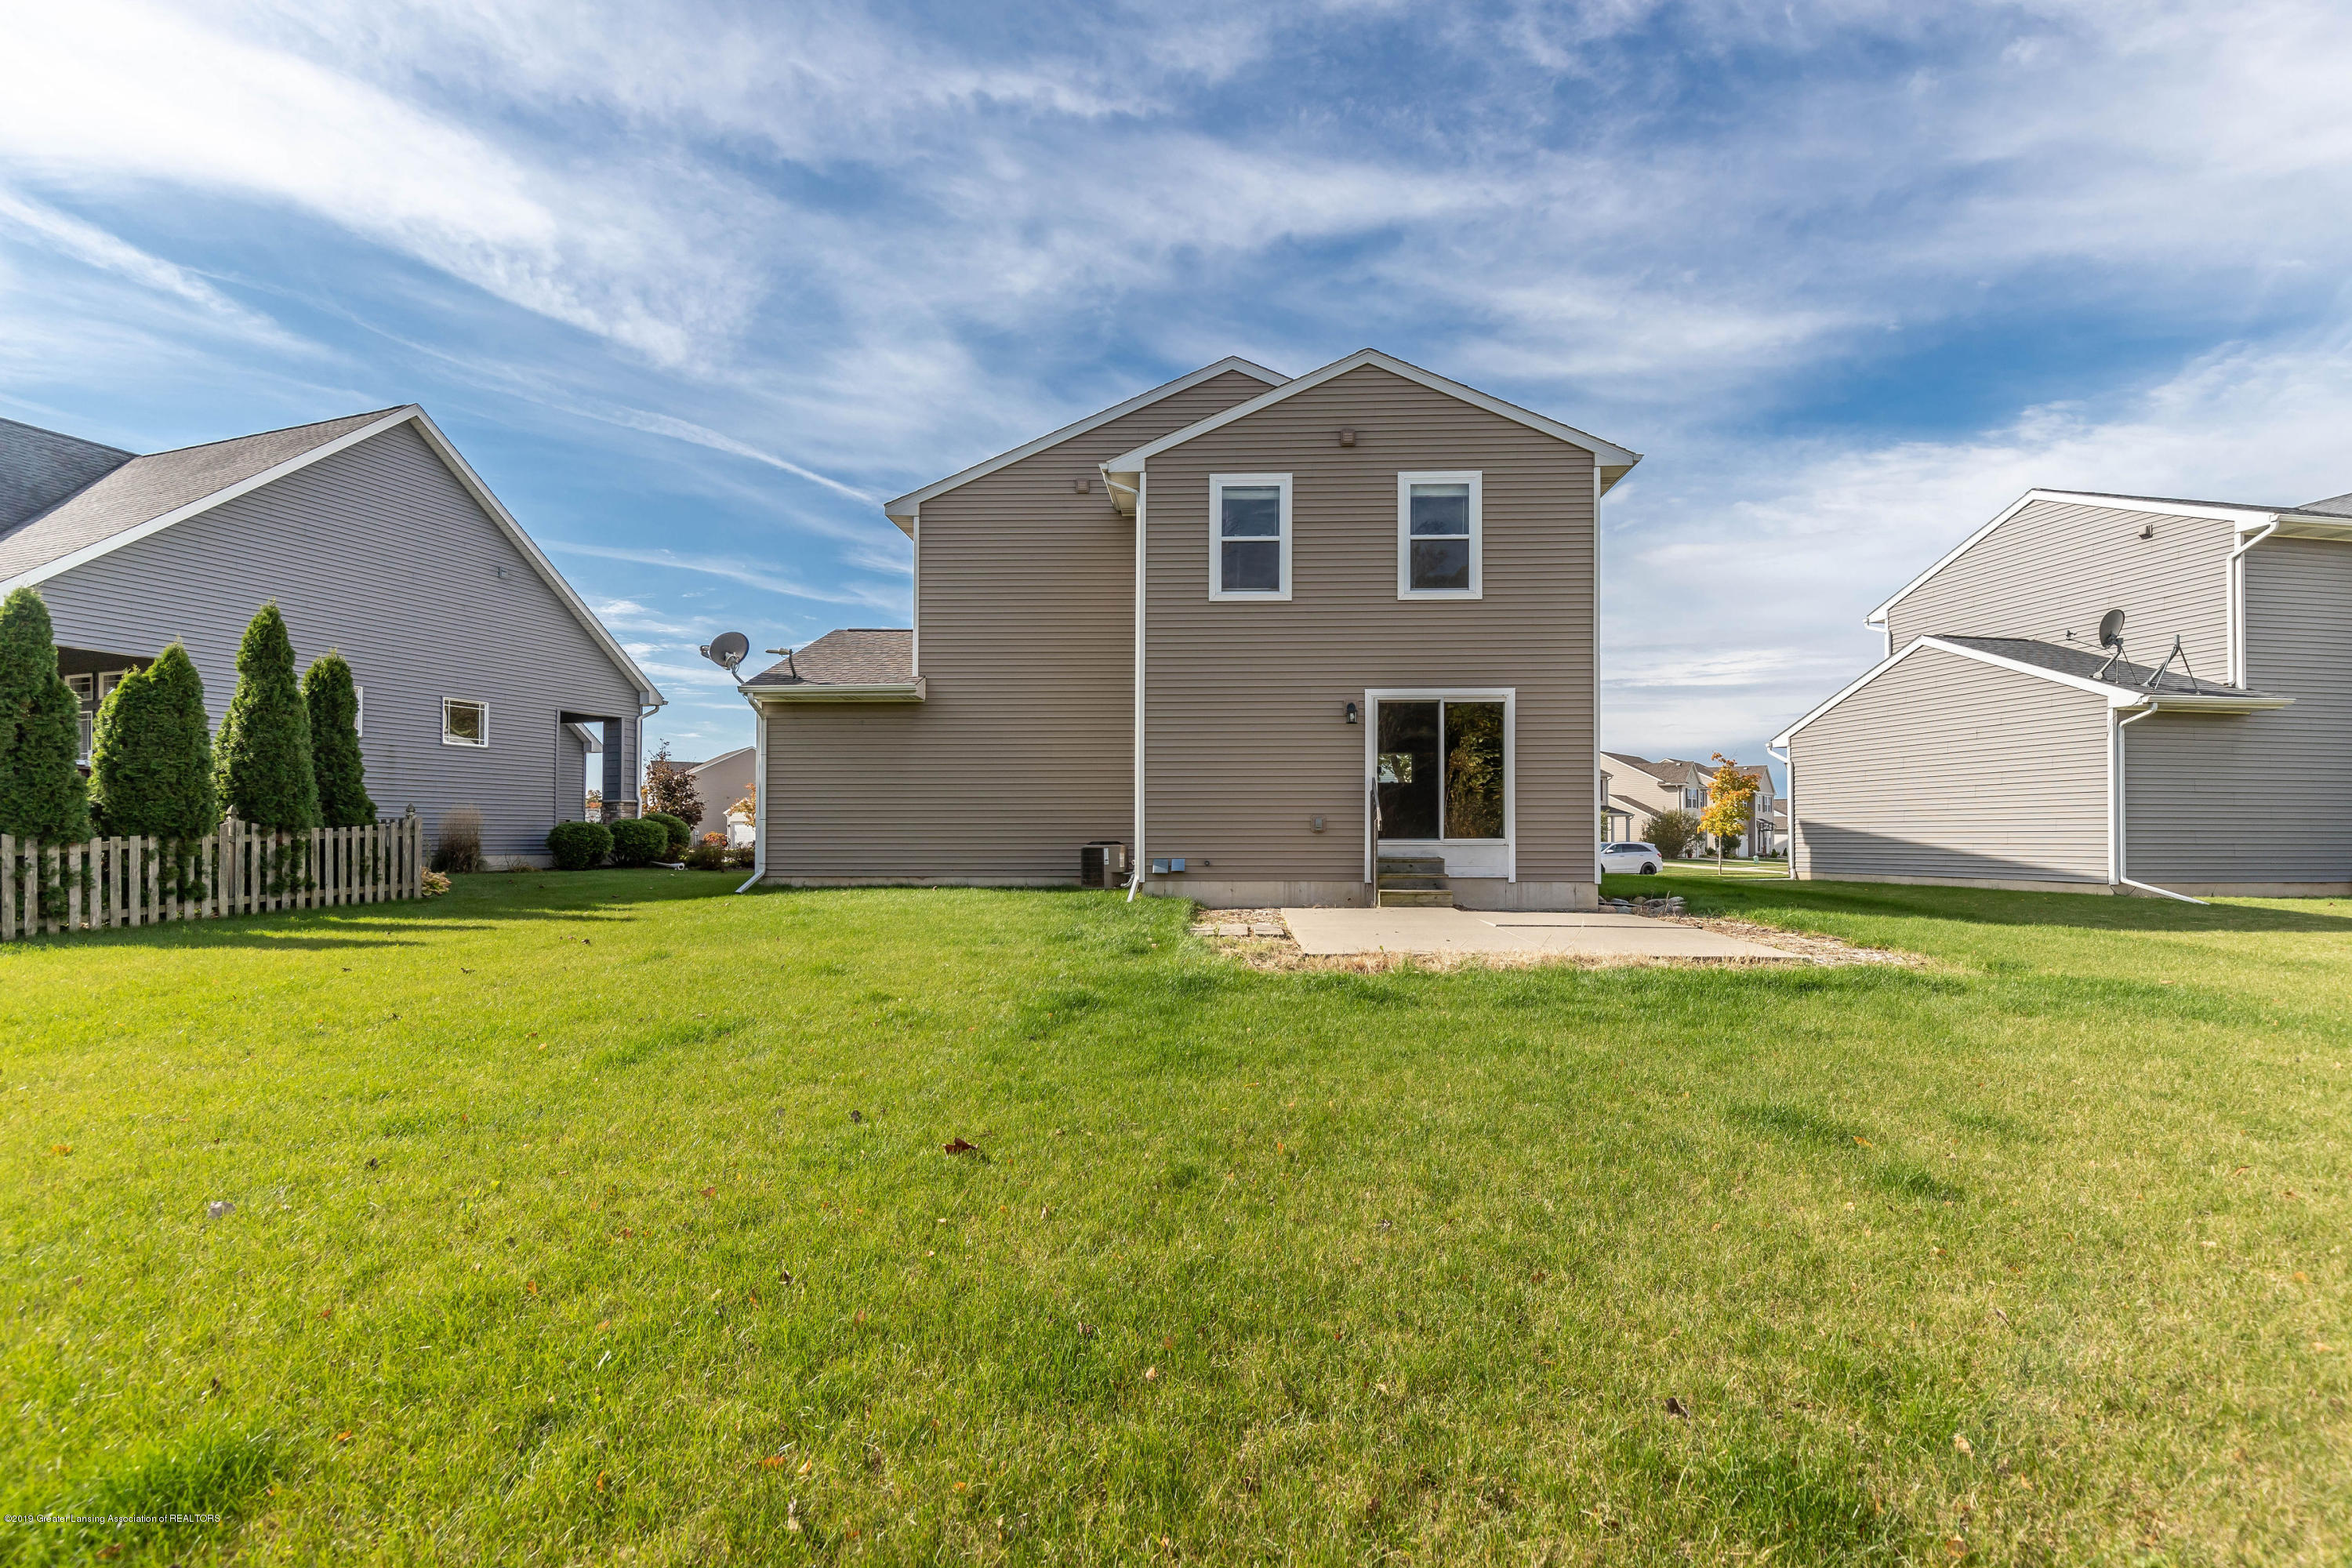 15125 Loxley Ln - loxleyback2(1of1) - 32